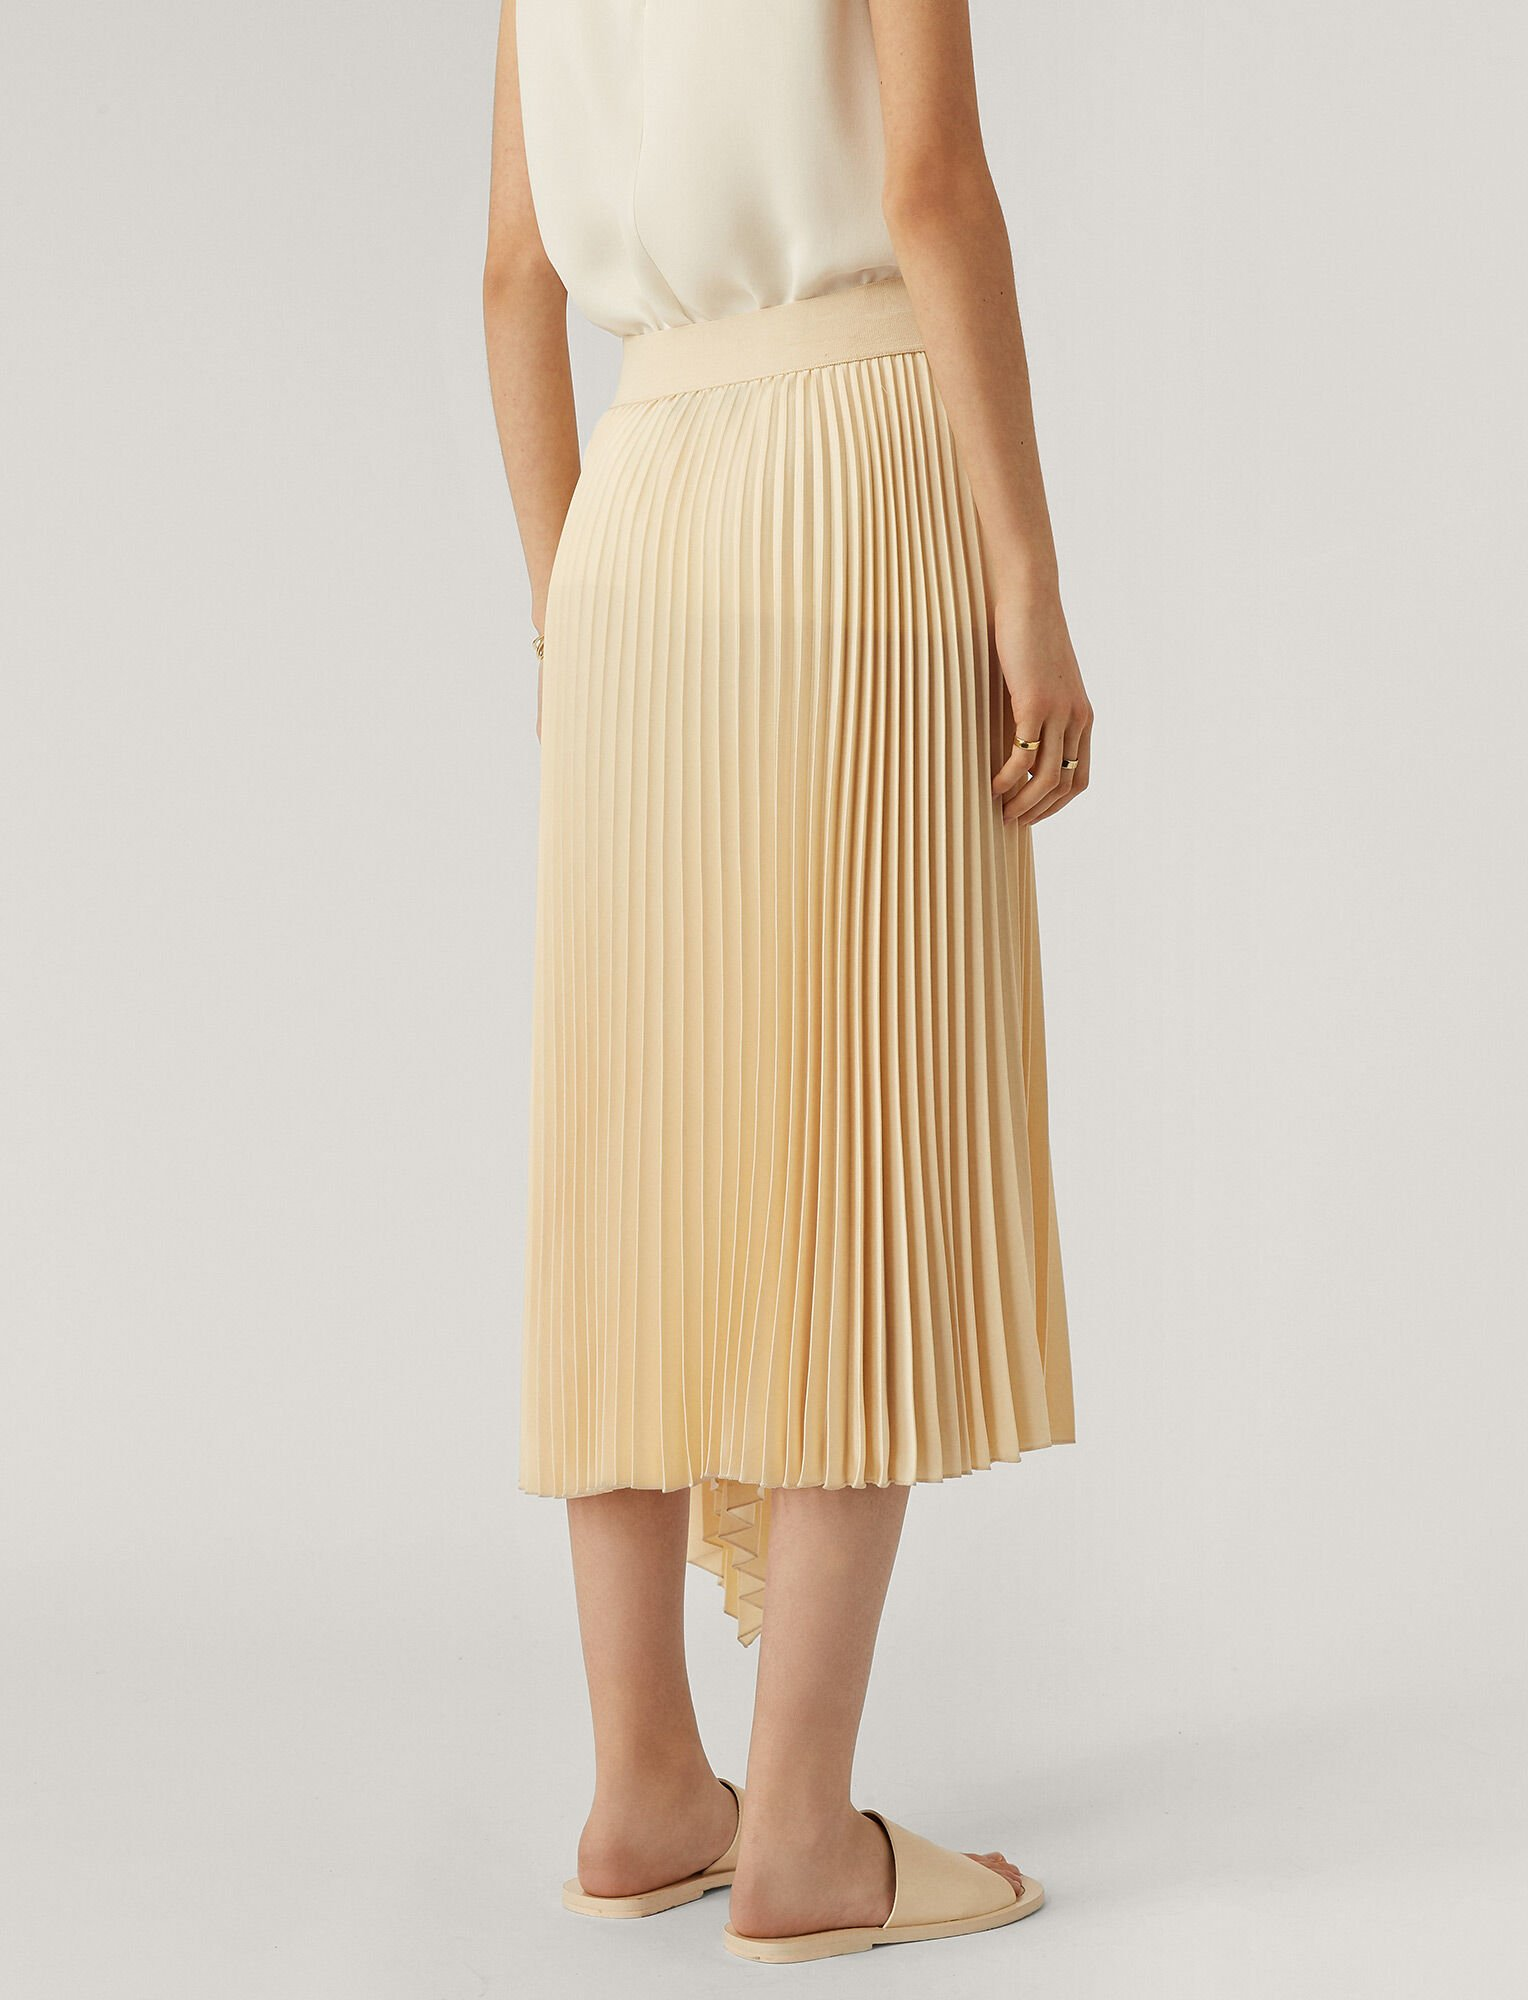 Joseph, Sabin Knit Weave Plissé Skirt, in Ivory